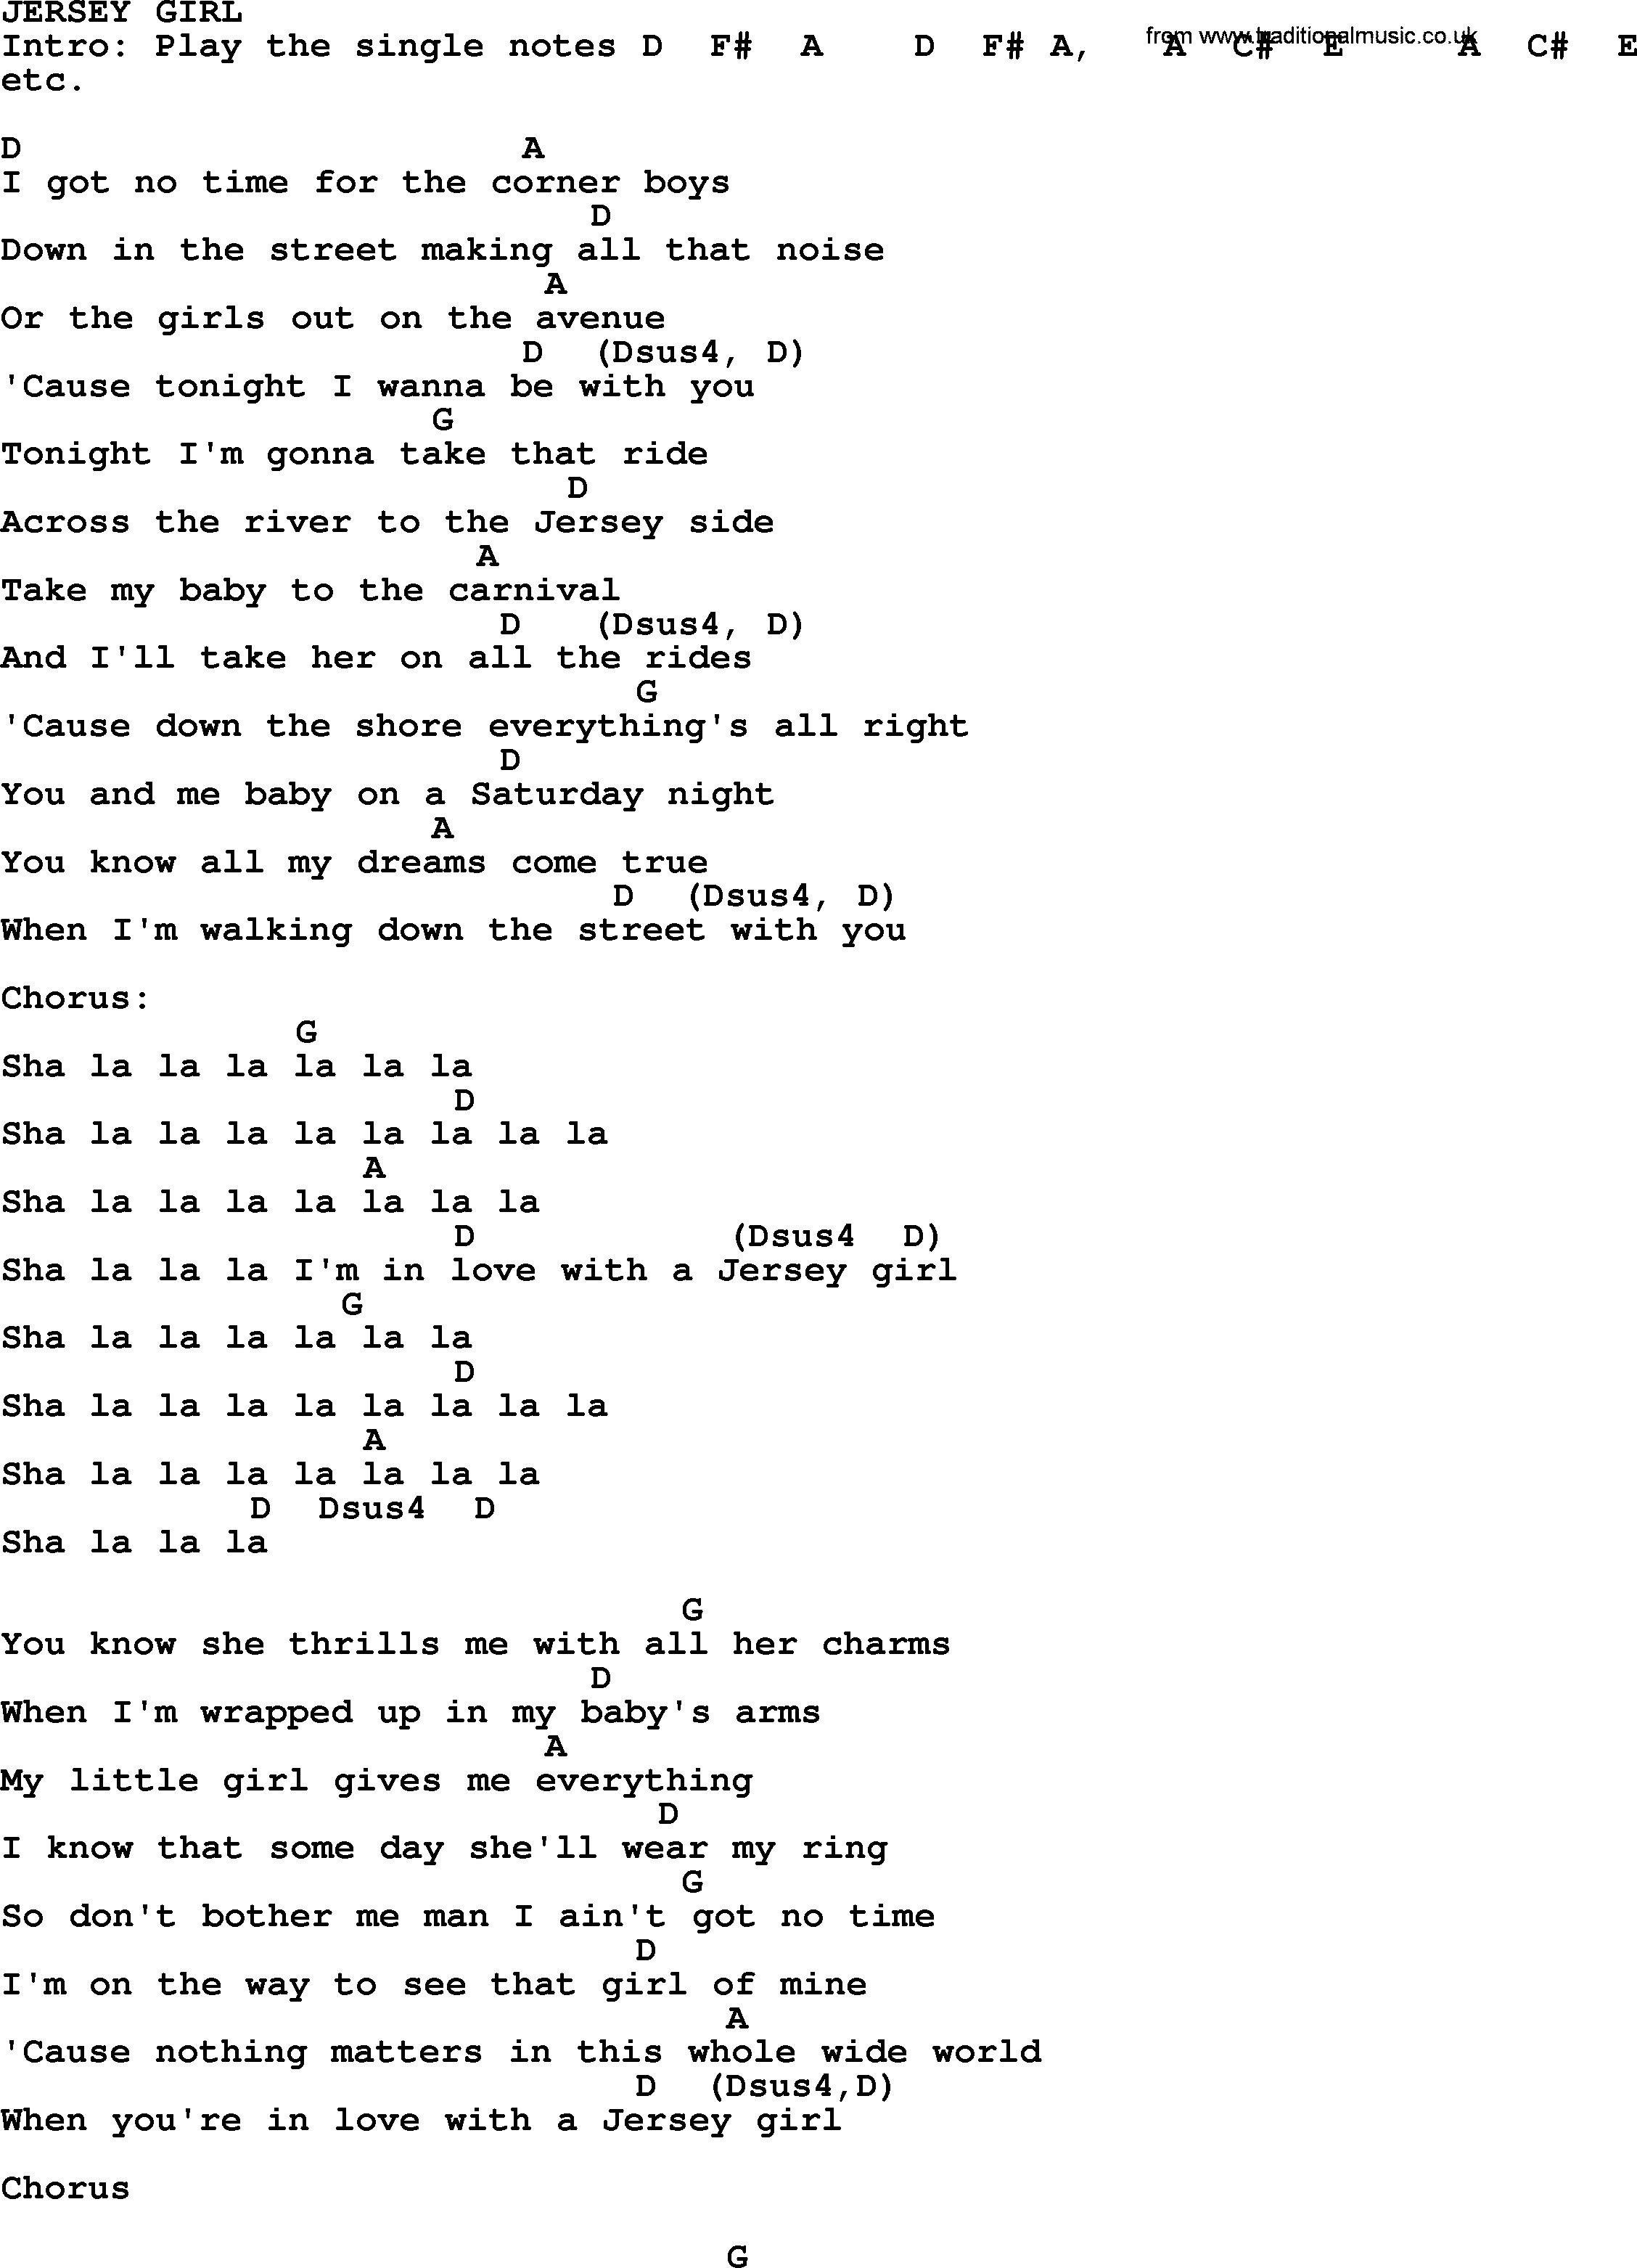 My Girl Chords Bruce Springsteen Song Jersey Girl Lyrics And Chords